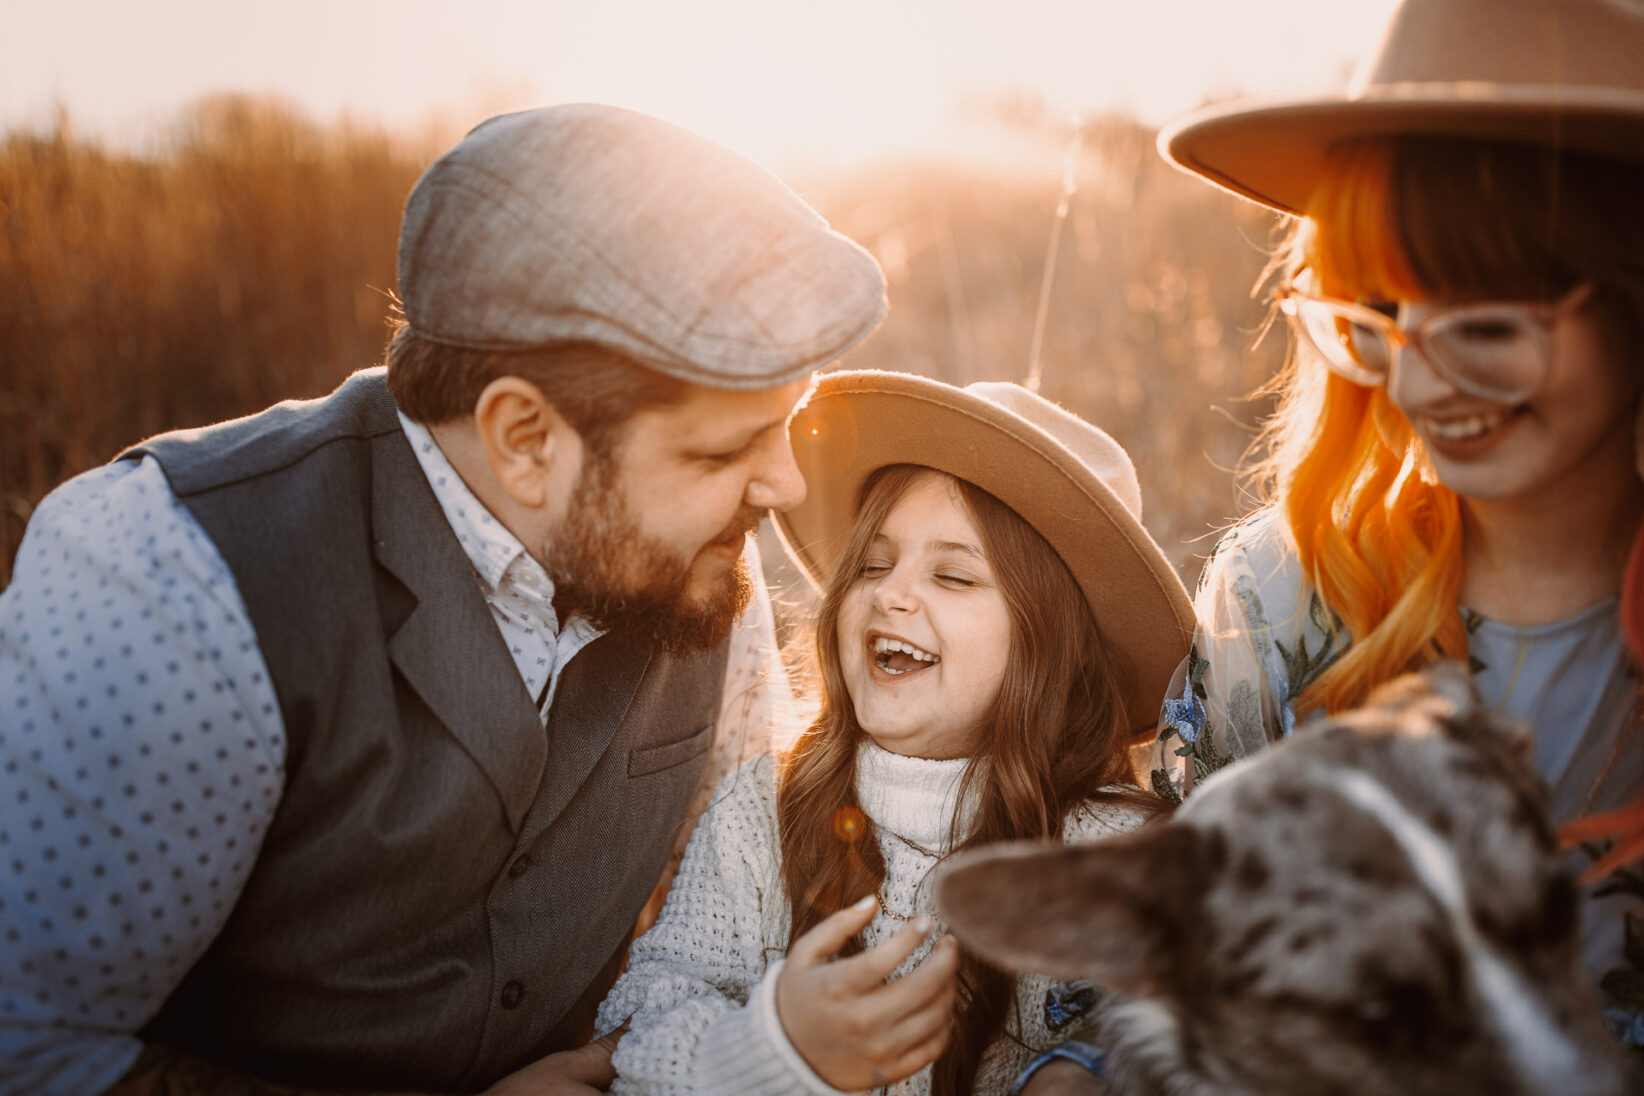 Philly Lifestyle Family Photographer